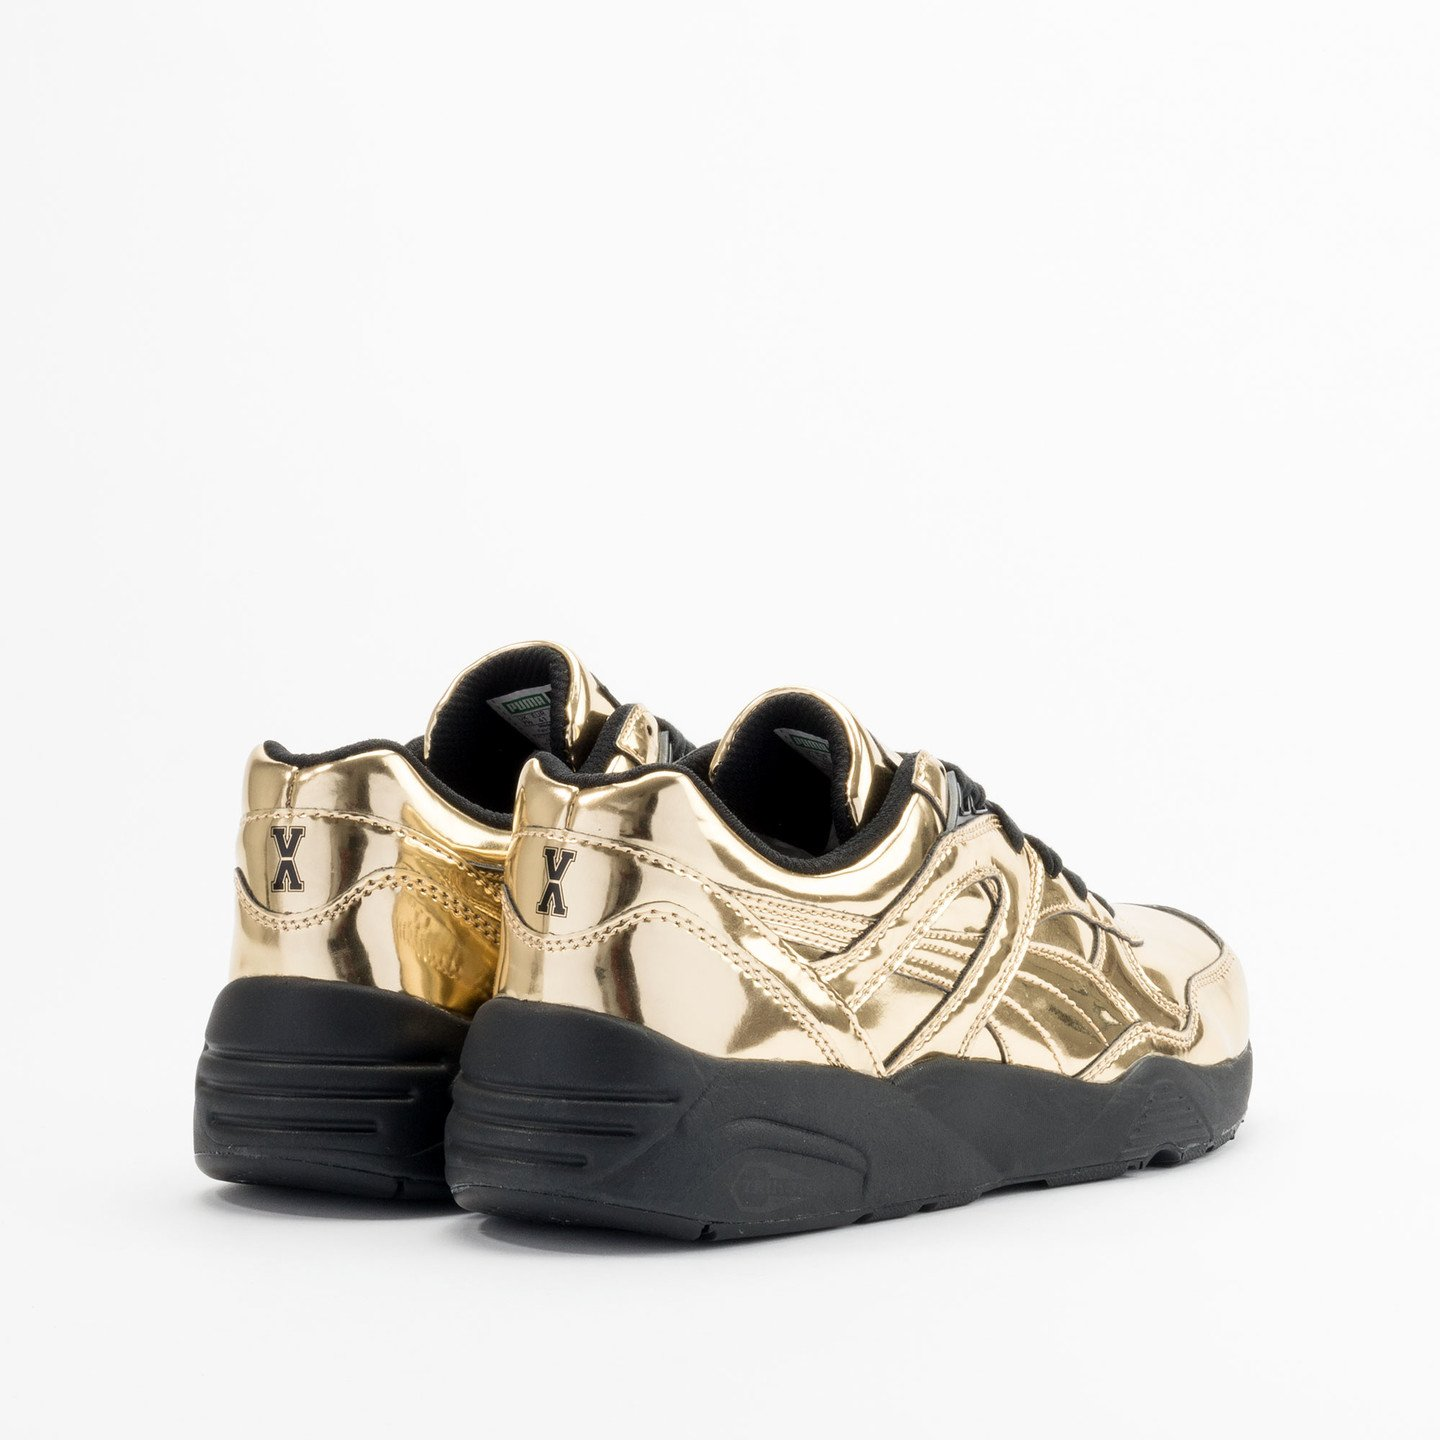 Puma R698 x Vashtie Gold Metallic Gold / Black 358838 01-40.5